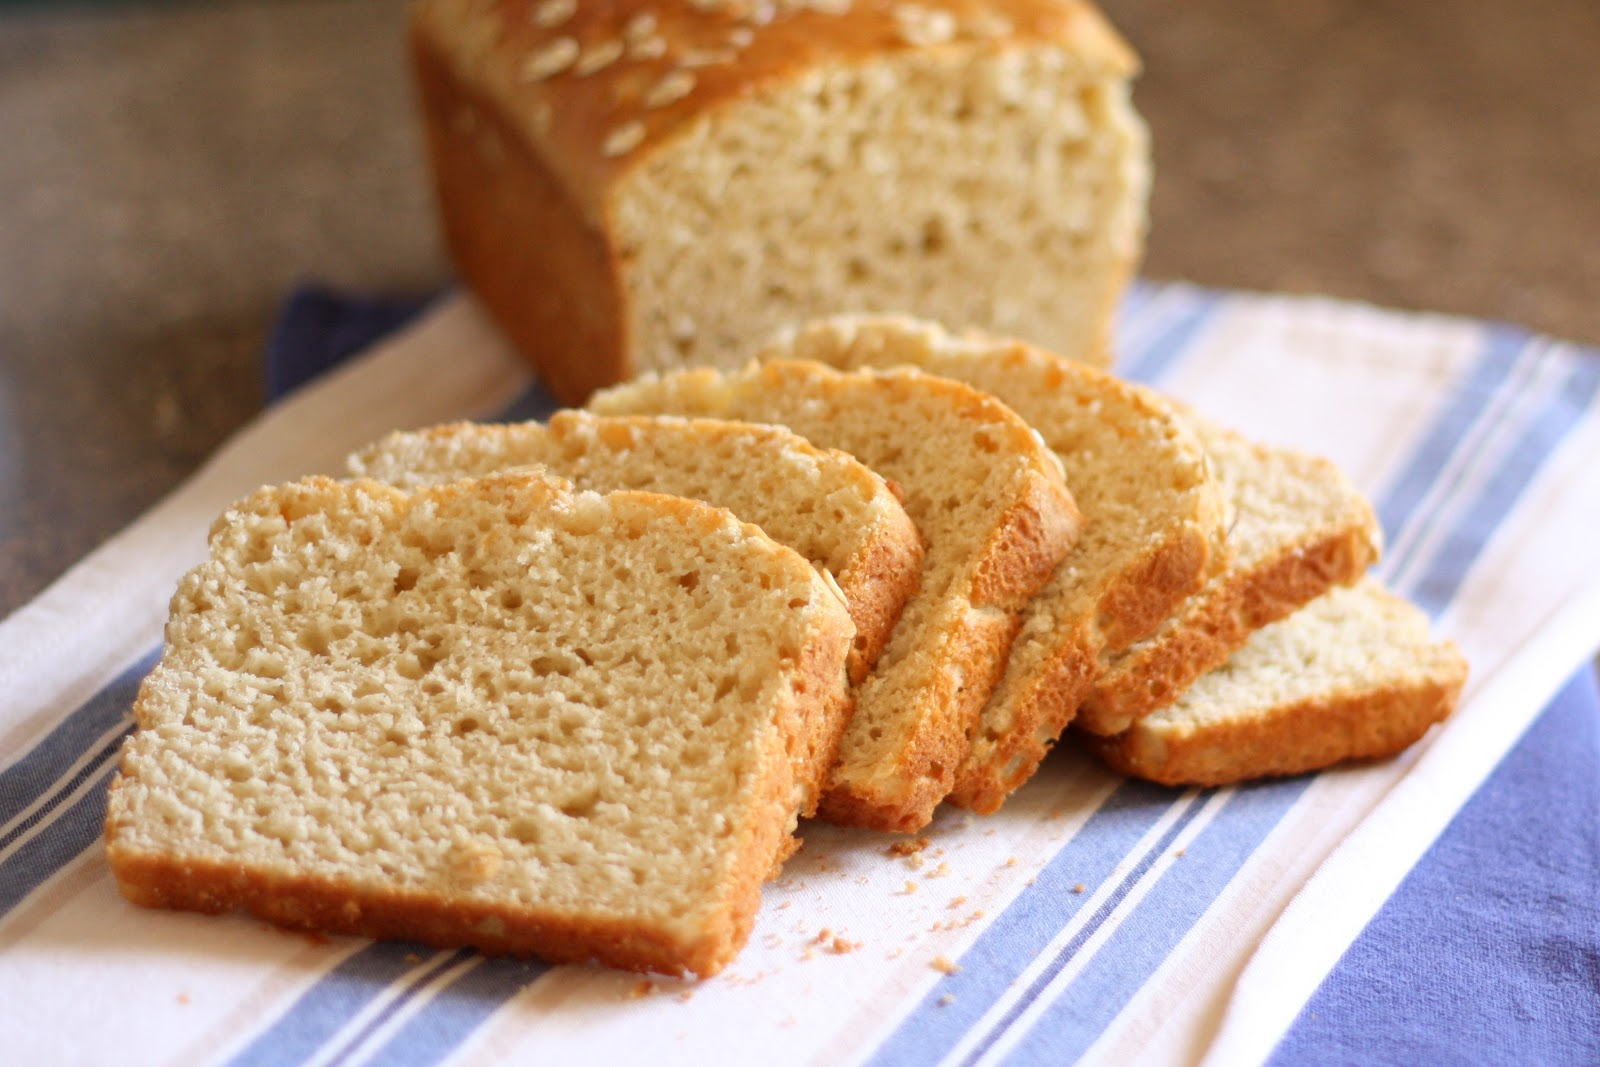 PHOTOS: 20 Bread Flavours You Can Make At Home [RECIPES] - The Trent